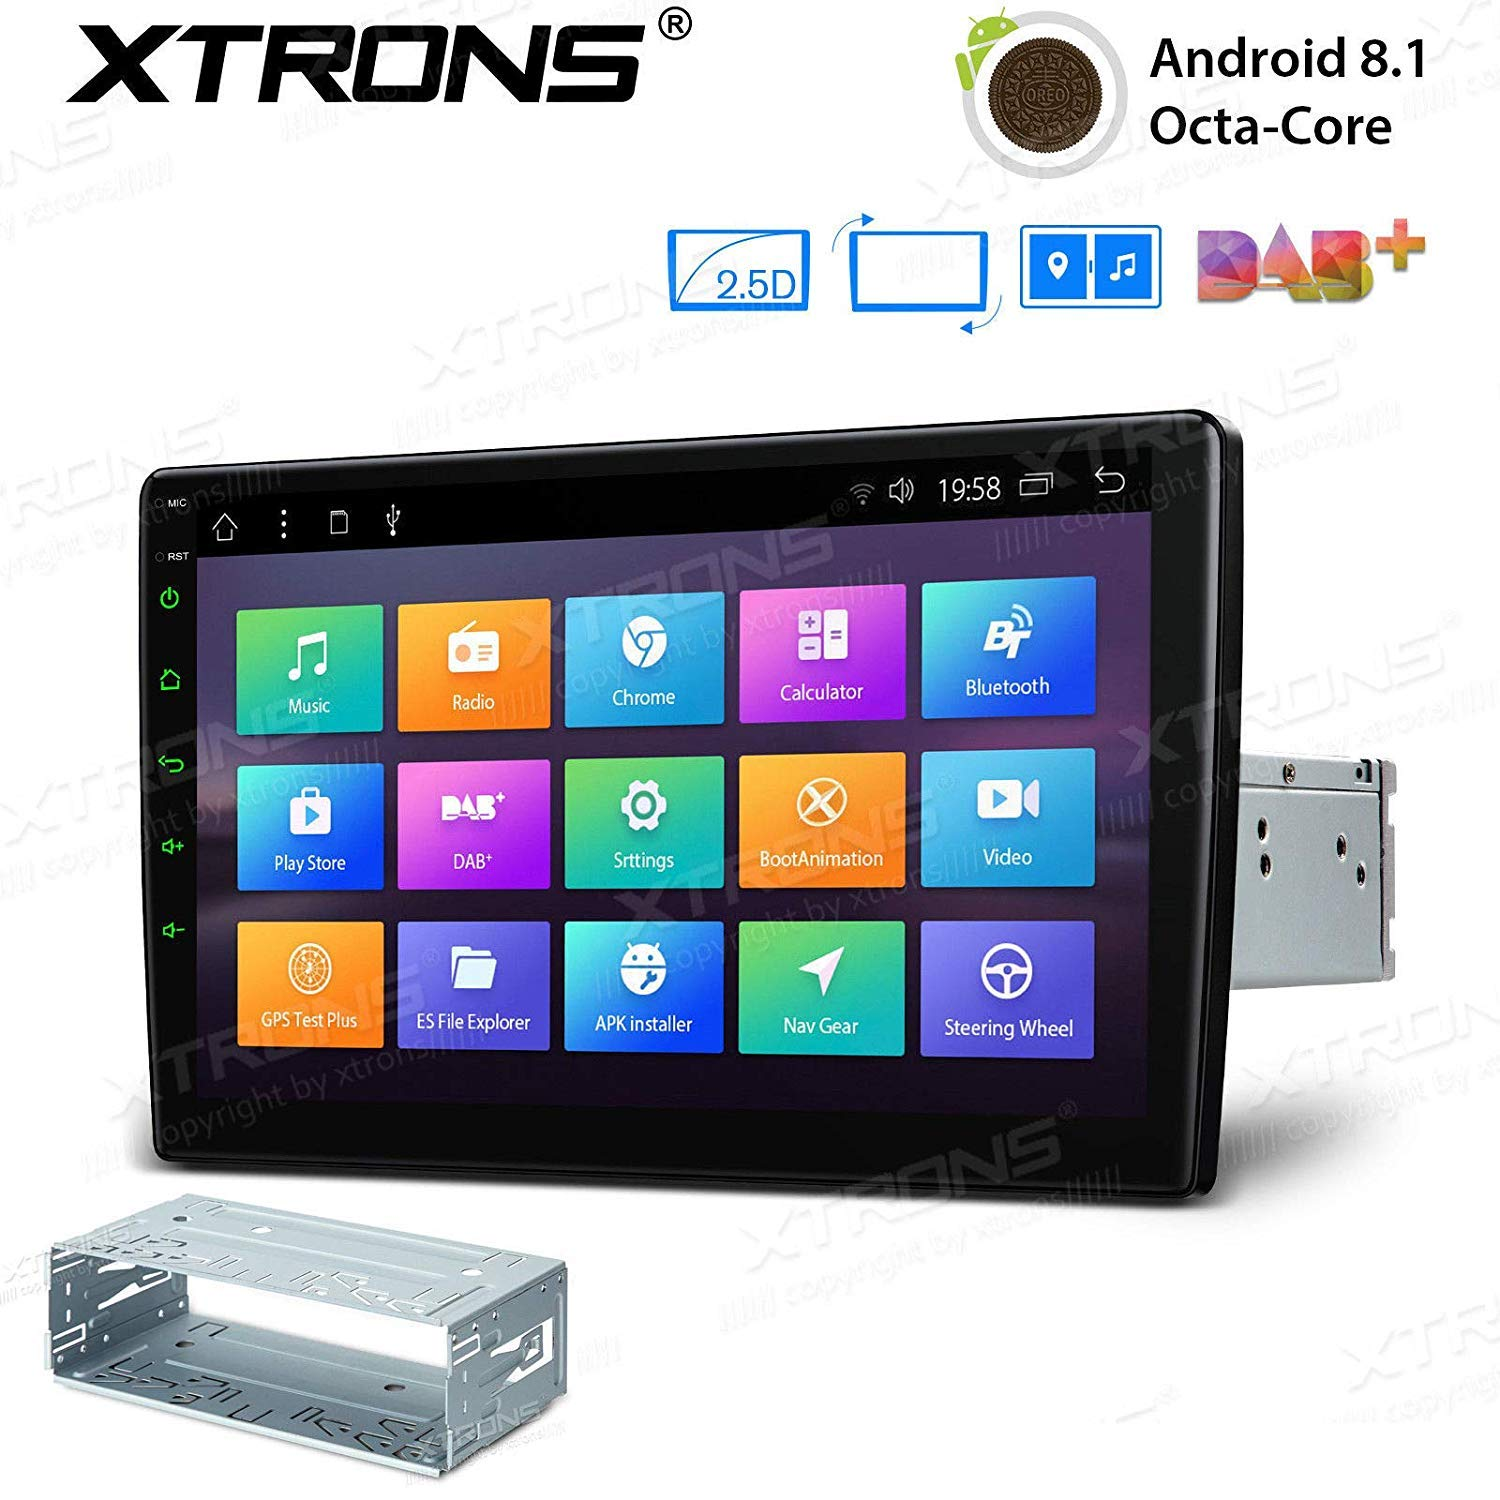 XTRONS 10.1'' Android 7.1 Nougat 32GB ROM + 2GB DDR3 RAM Octa-Core Rotatable Face Panel 2.5D Curved Screen Car Stereo & Universal Single Din Stereo Fitting Cage by XTRONS